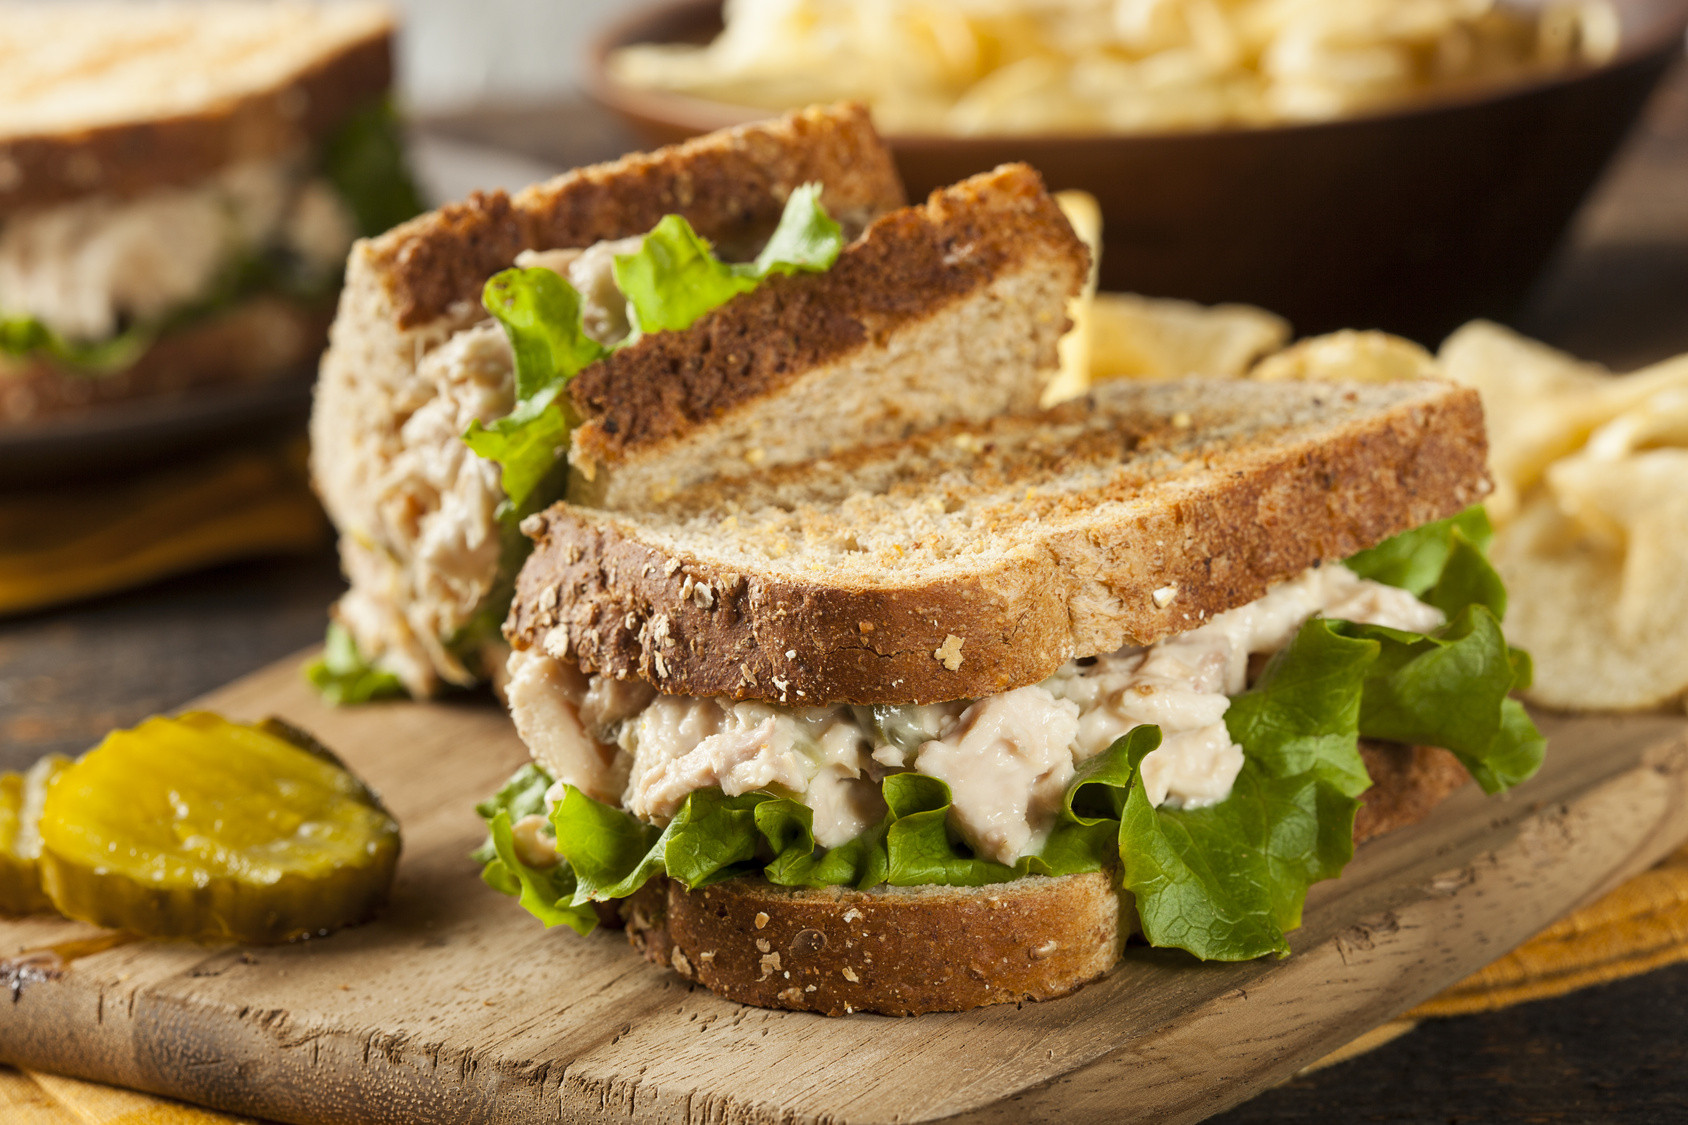 Healthy Sandwich Recipes For Weight Loss  Healthy Sandwiches for Weight Loss BEAUTIFUL SHOES